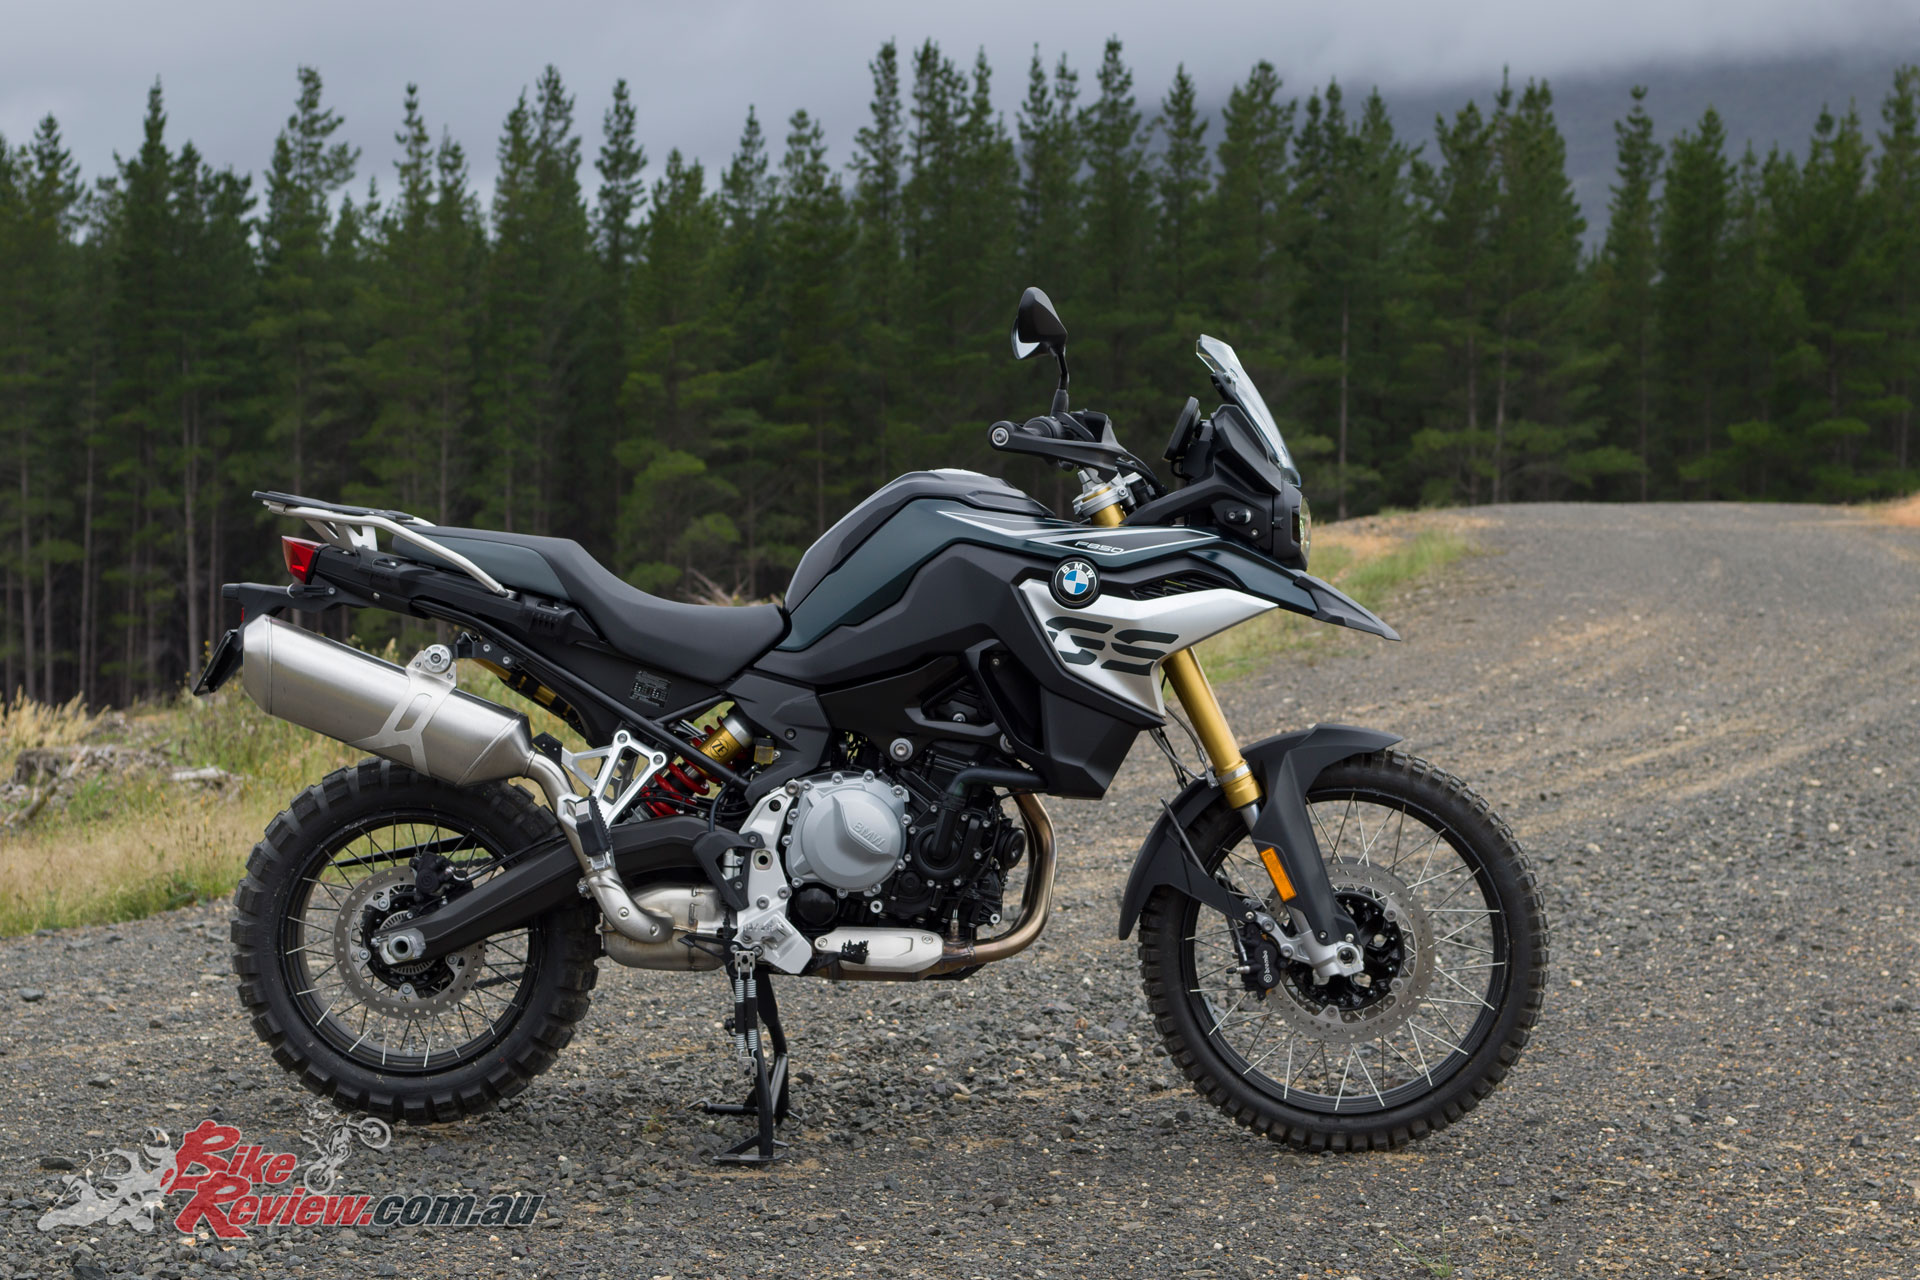 The 2019 BMW F 850 GS is a highly capable off roader. The knobbies are a zero cost option as well.